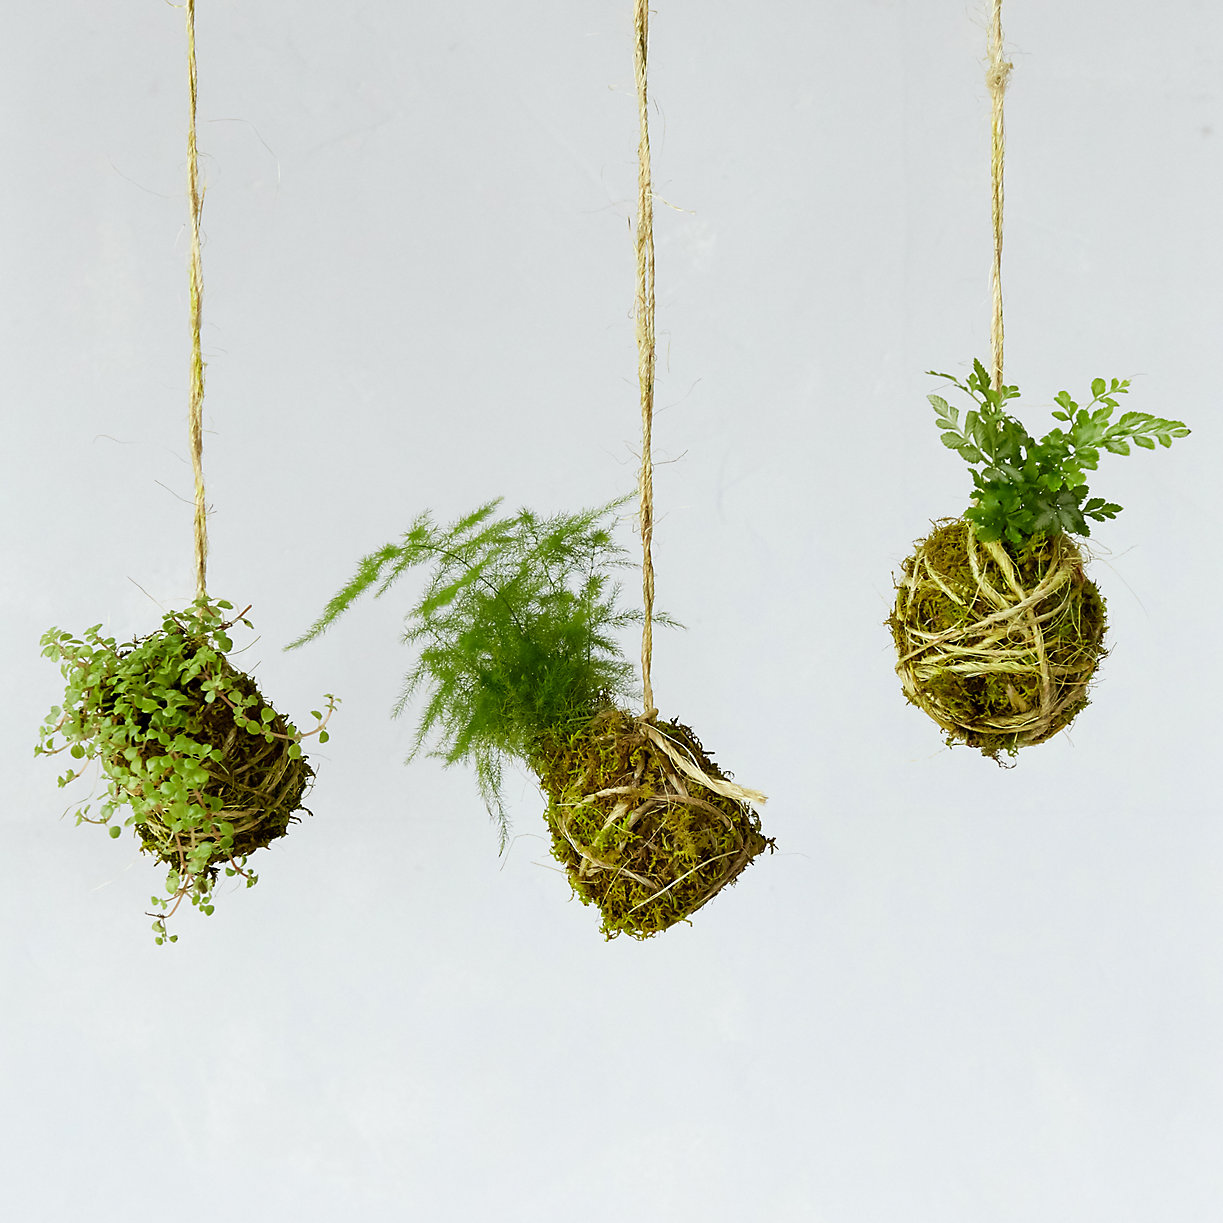 String garden from Terrain